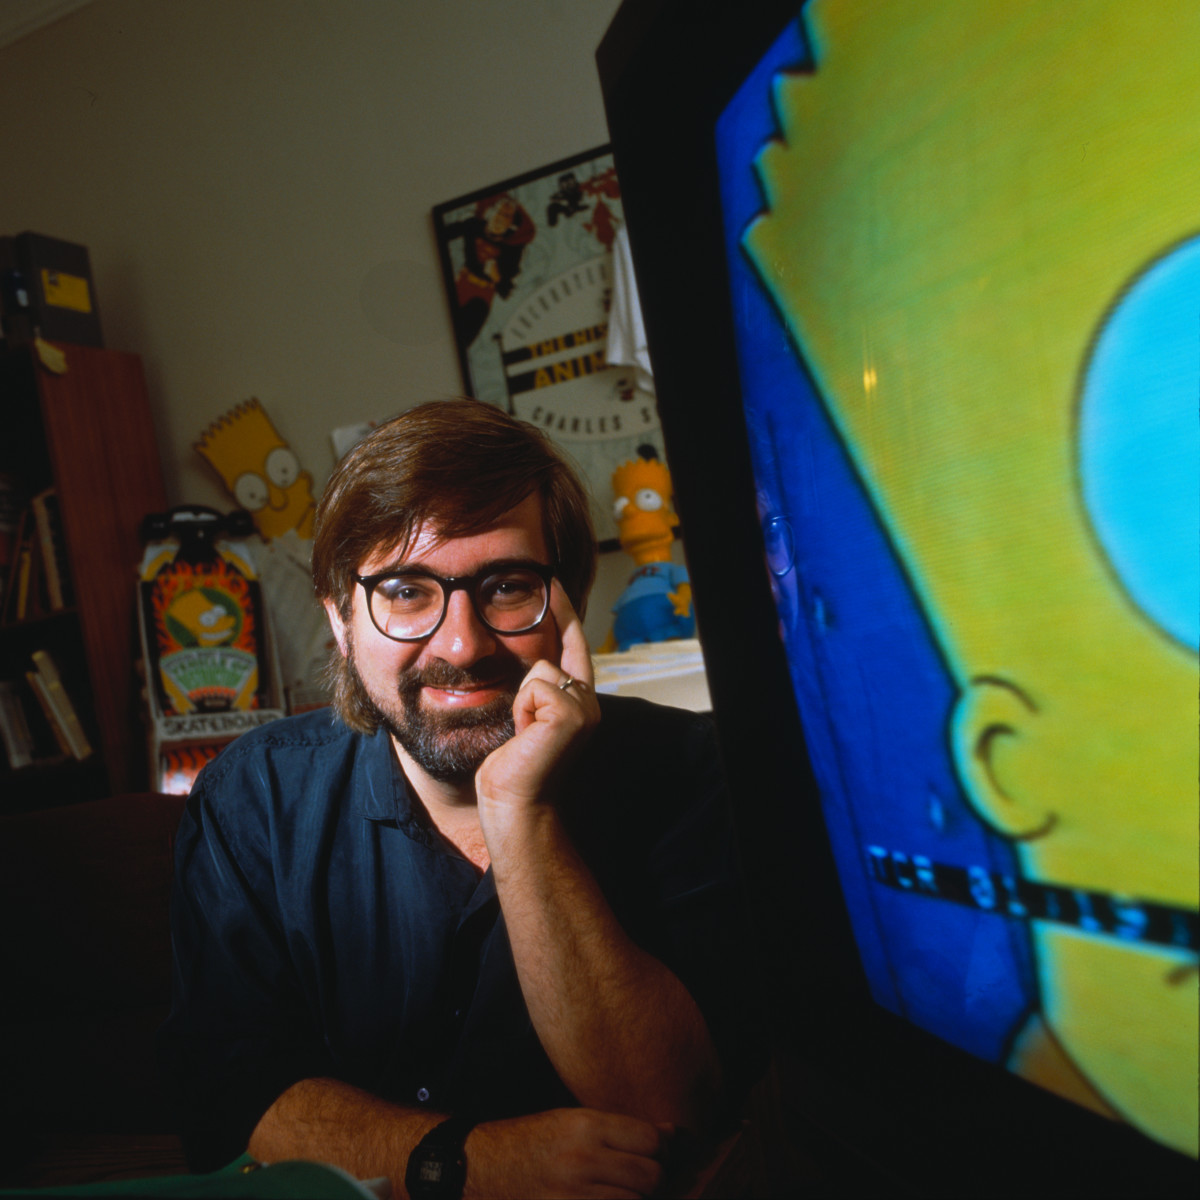 Matt Groening Simpsons